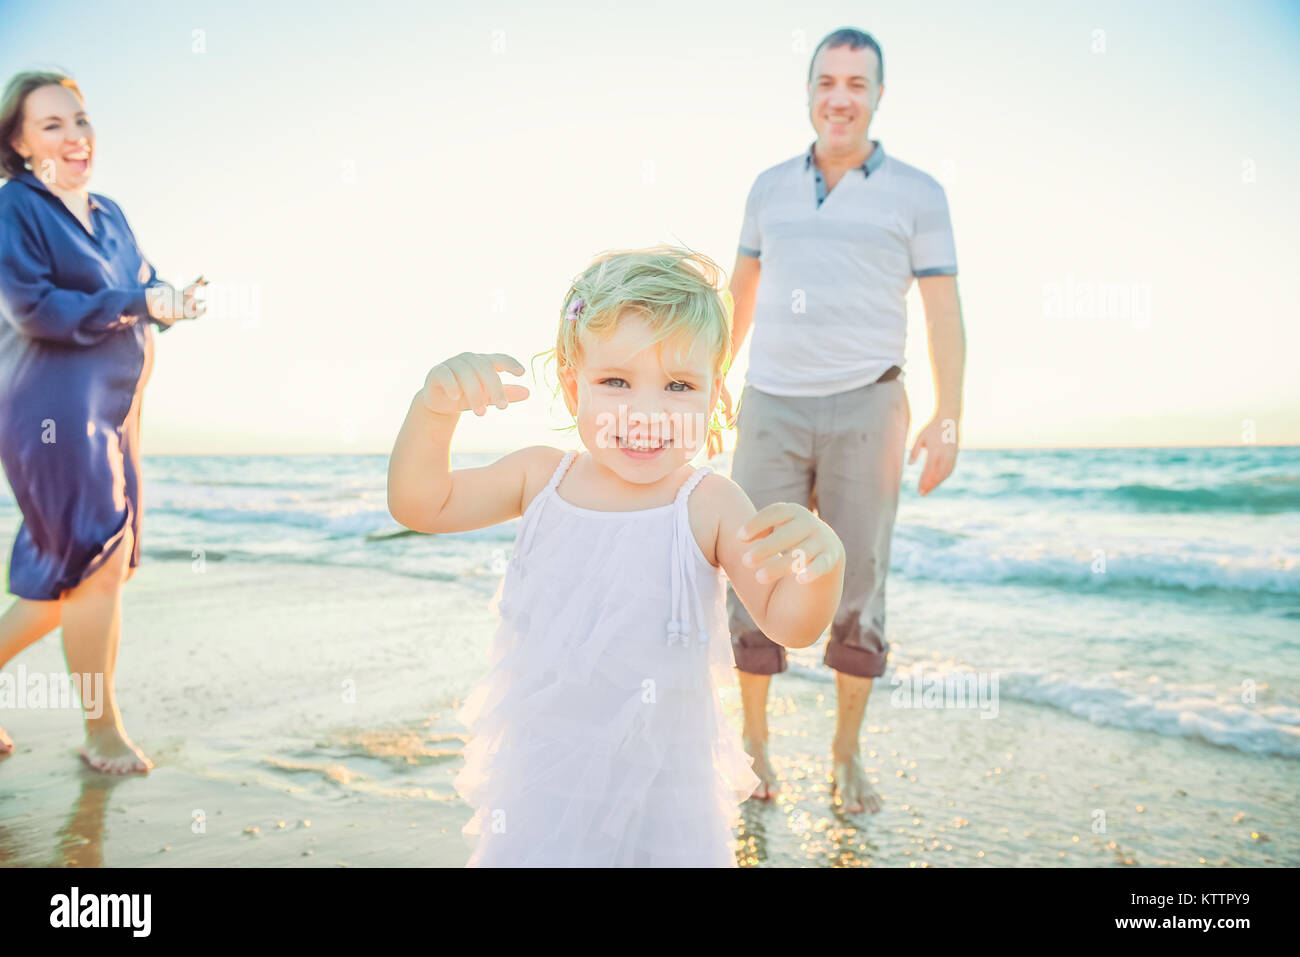 Laughing Baby girl running forward with smiling parents on the background. Happiness and harmony in family life. - Stock Image